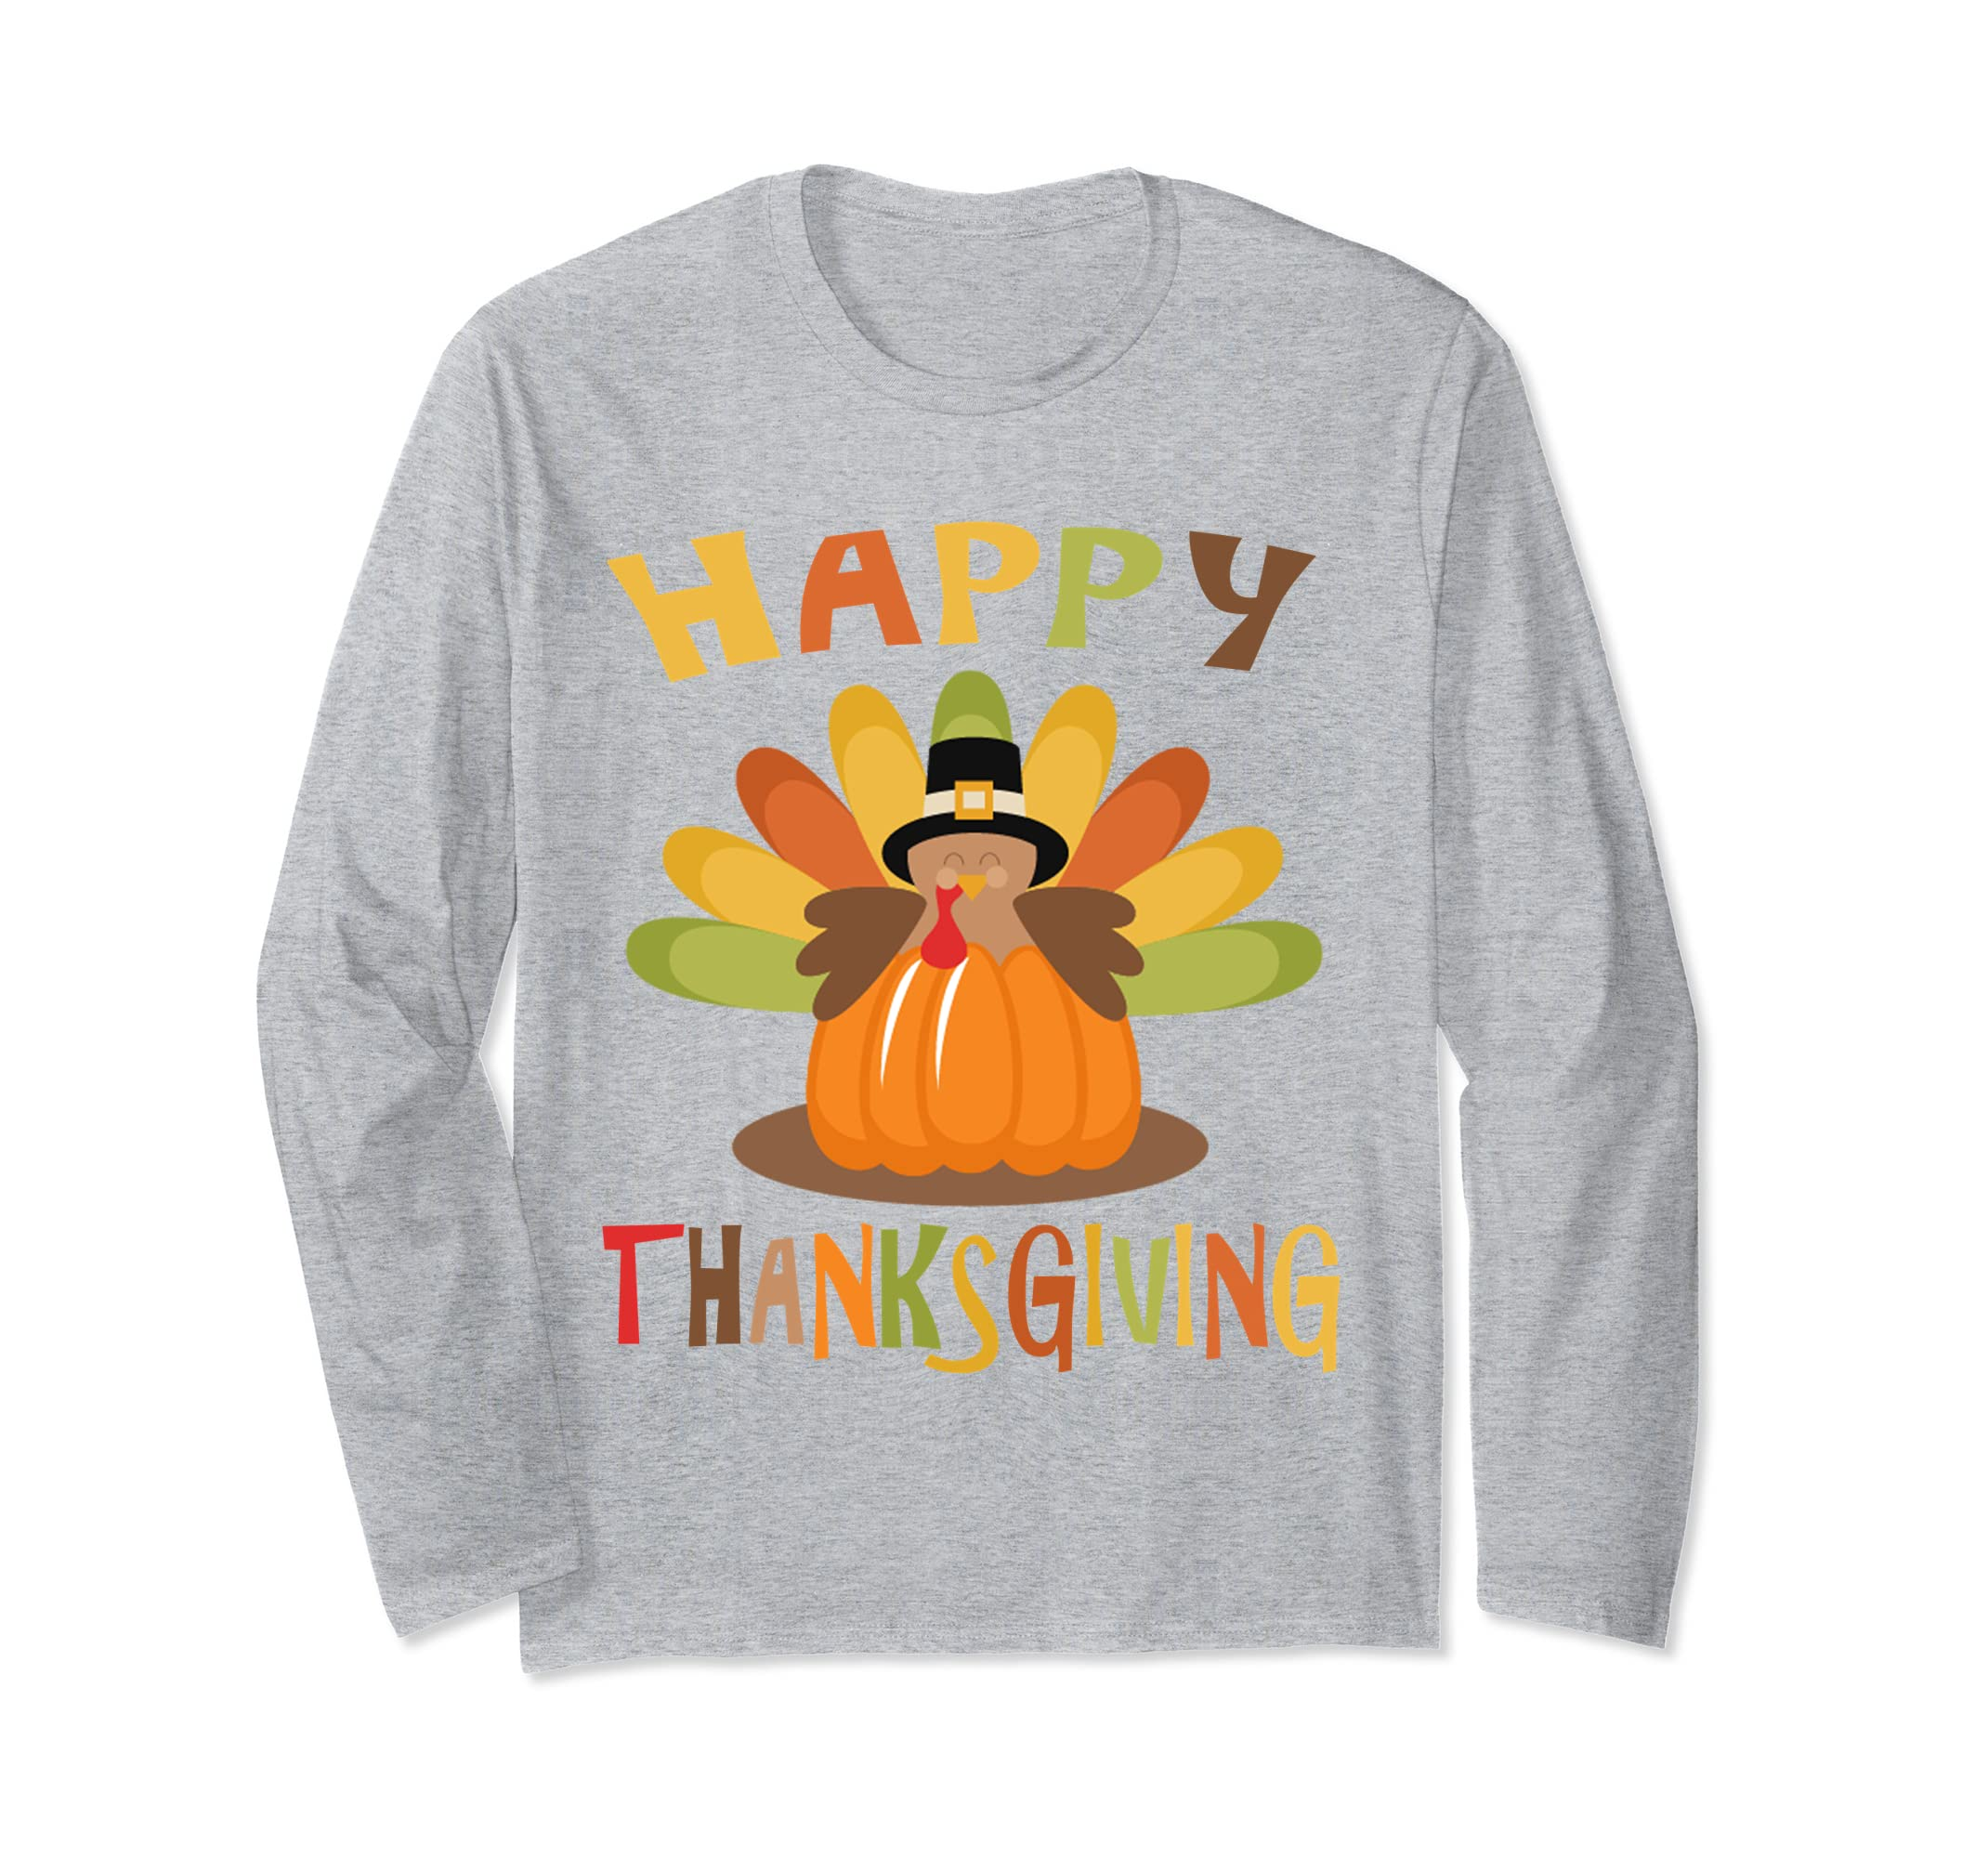 2018 Thanksgiving Tee Happy Thanksgiving Long Sleeve T Shirt-azvn